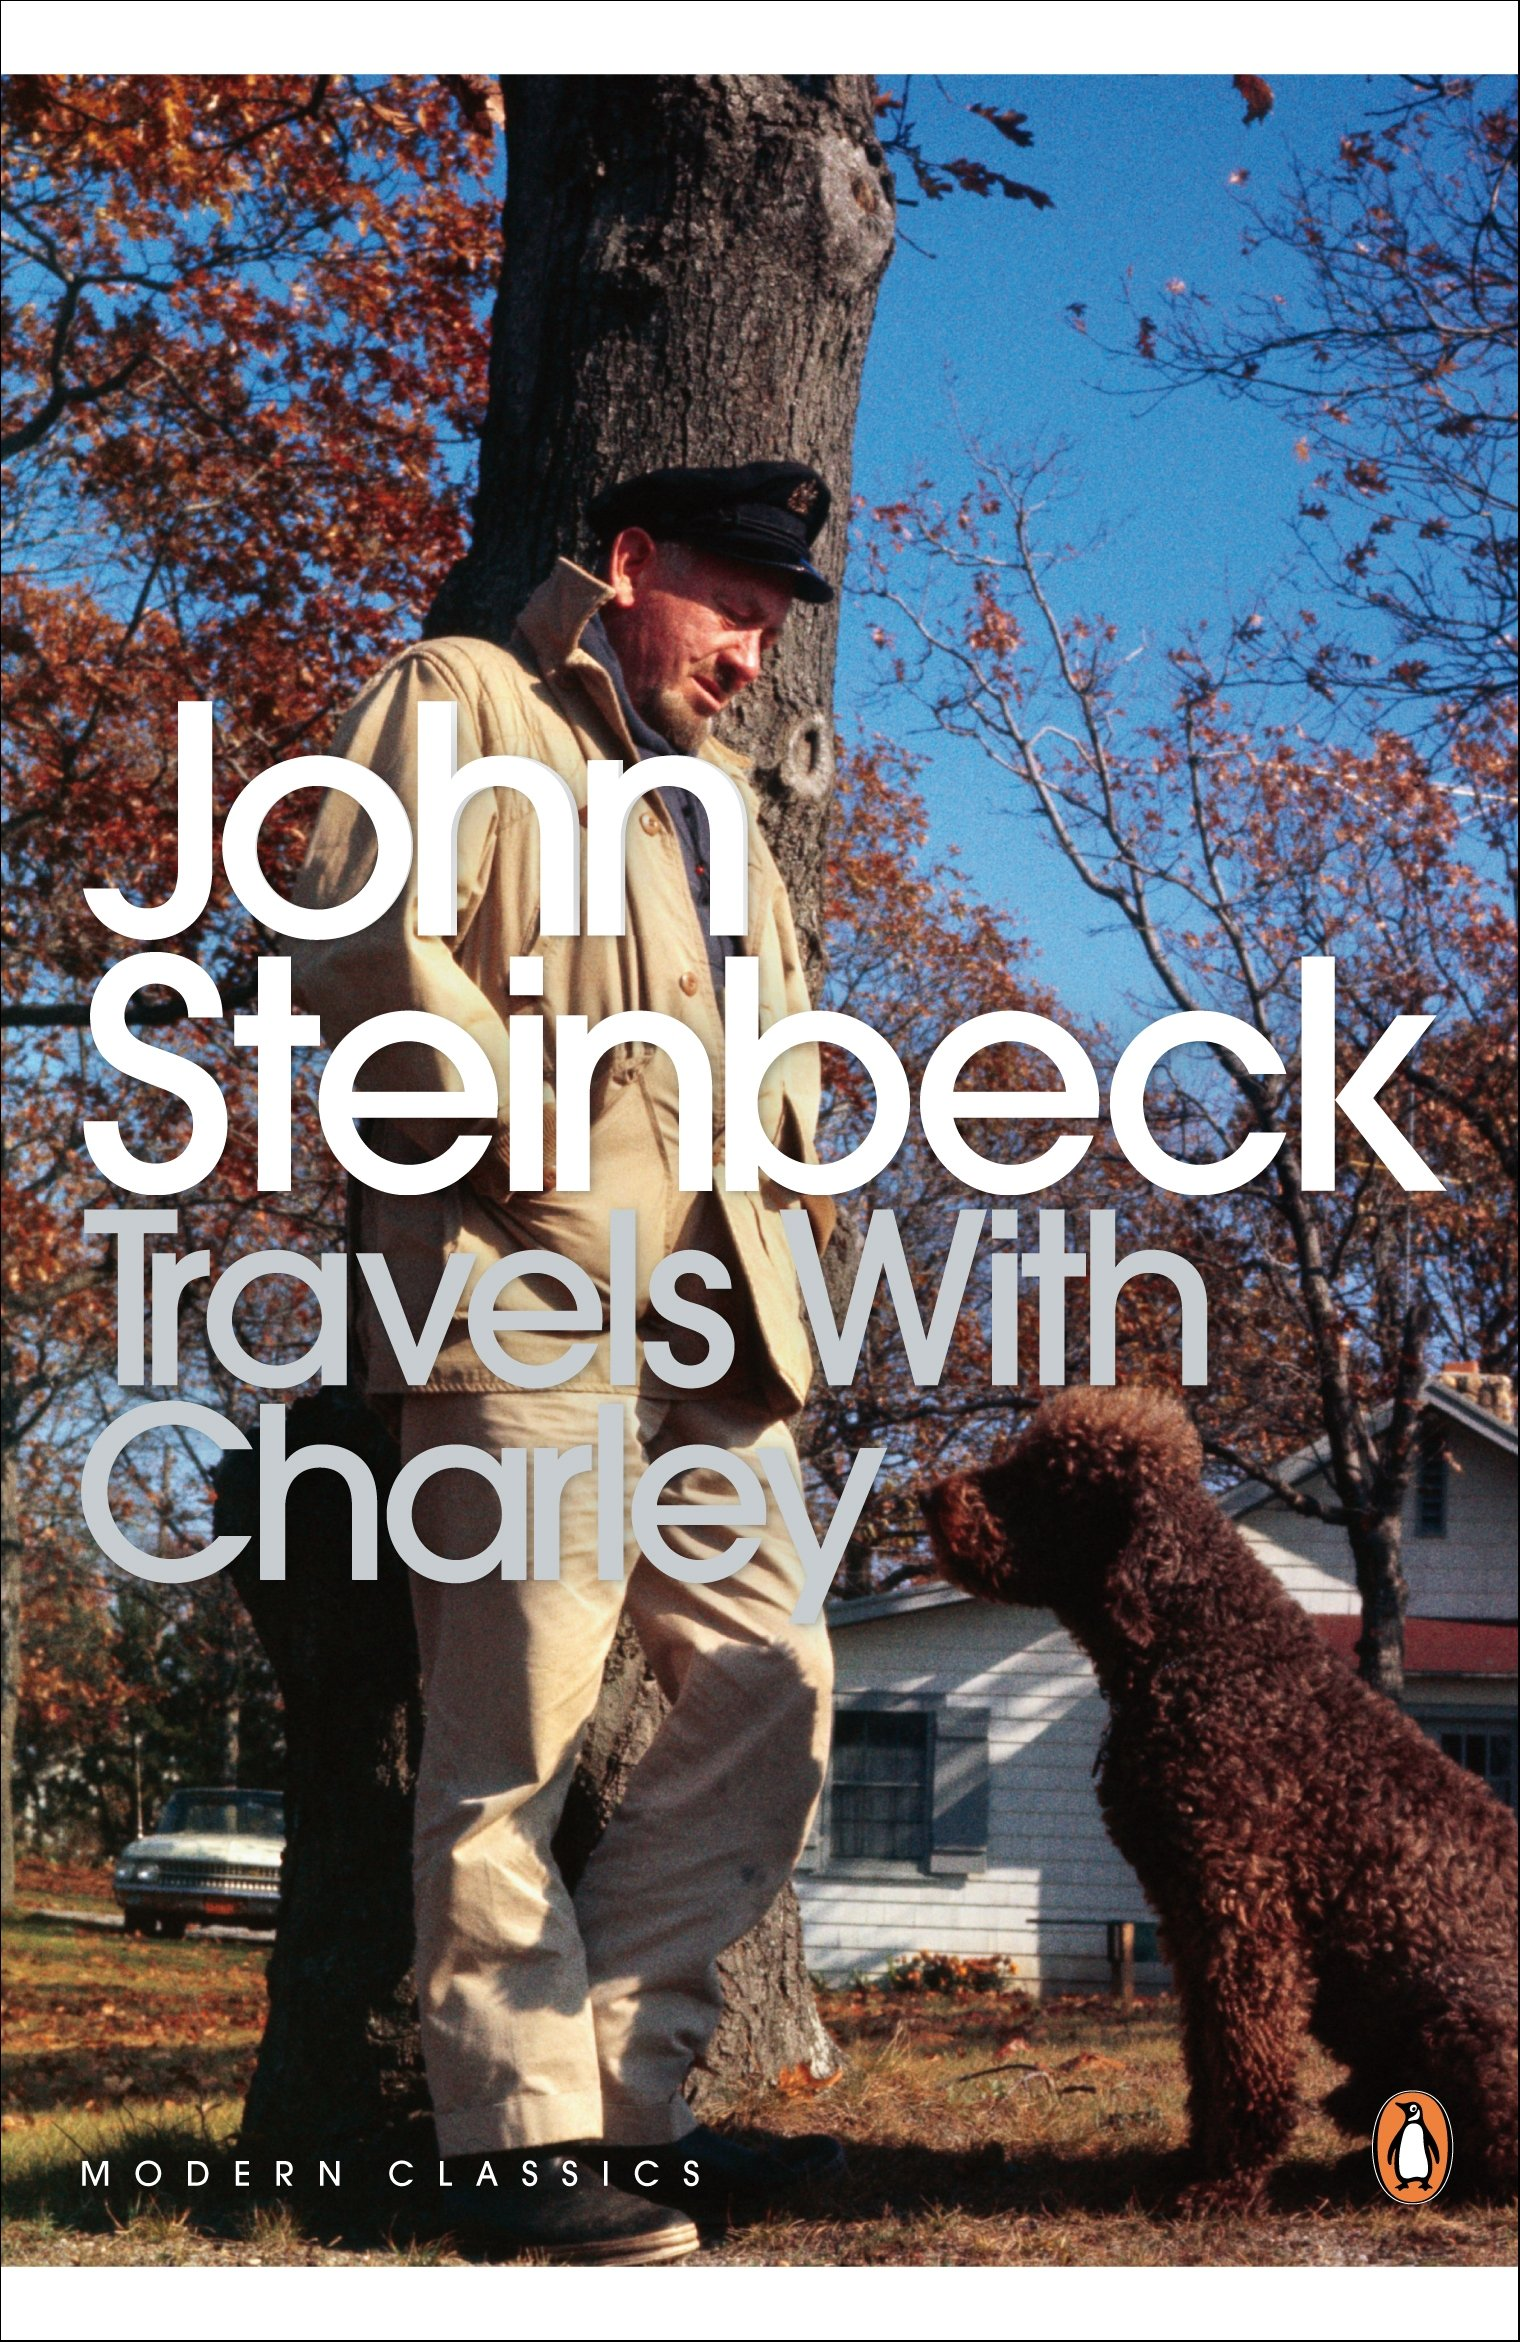 an analysis of travels with charley an essay by john steinbeck New york (okay, new england) state of mindsteinbeck and charley get ready to set out on the road so steinbeck can reconnect with america—you know, the land and the people and all that.